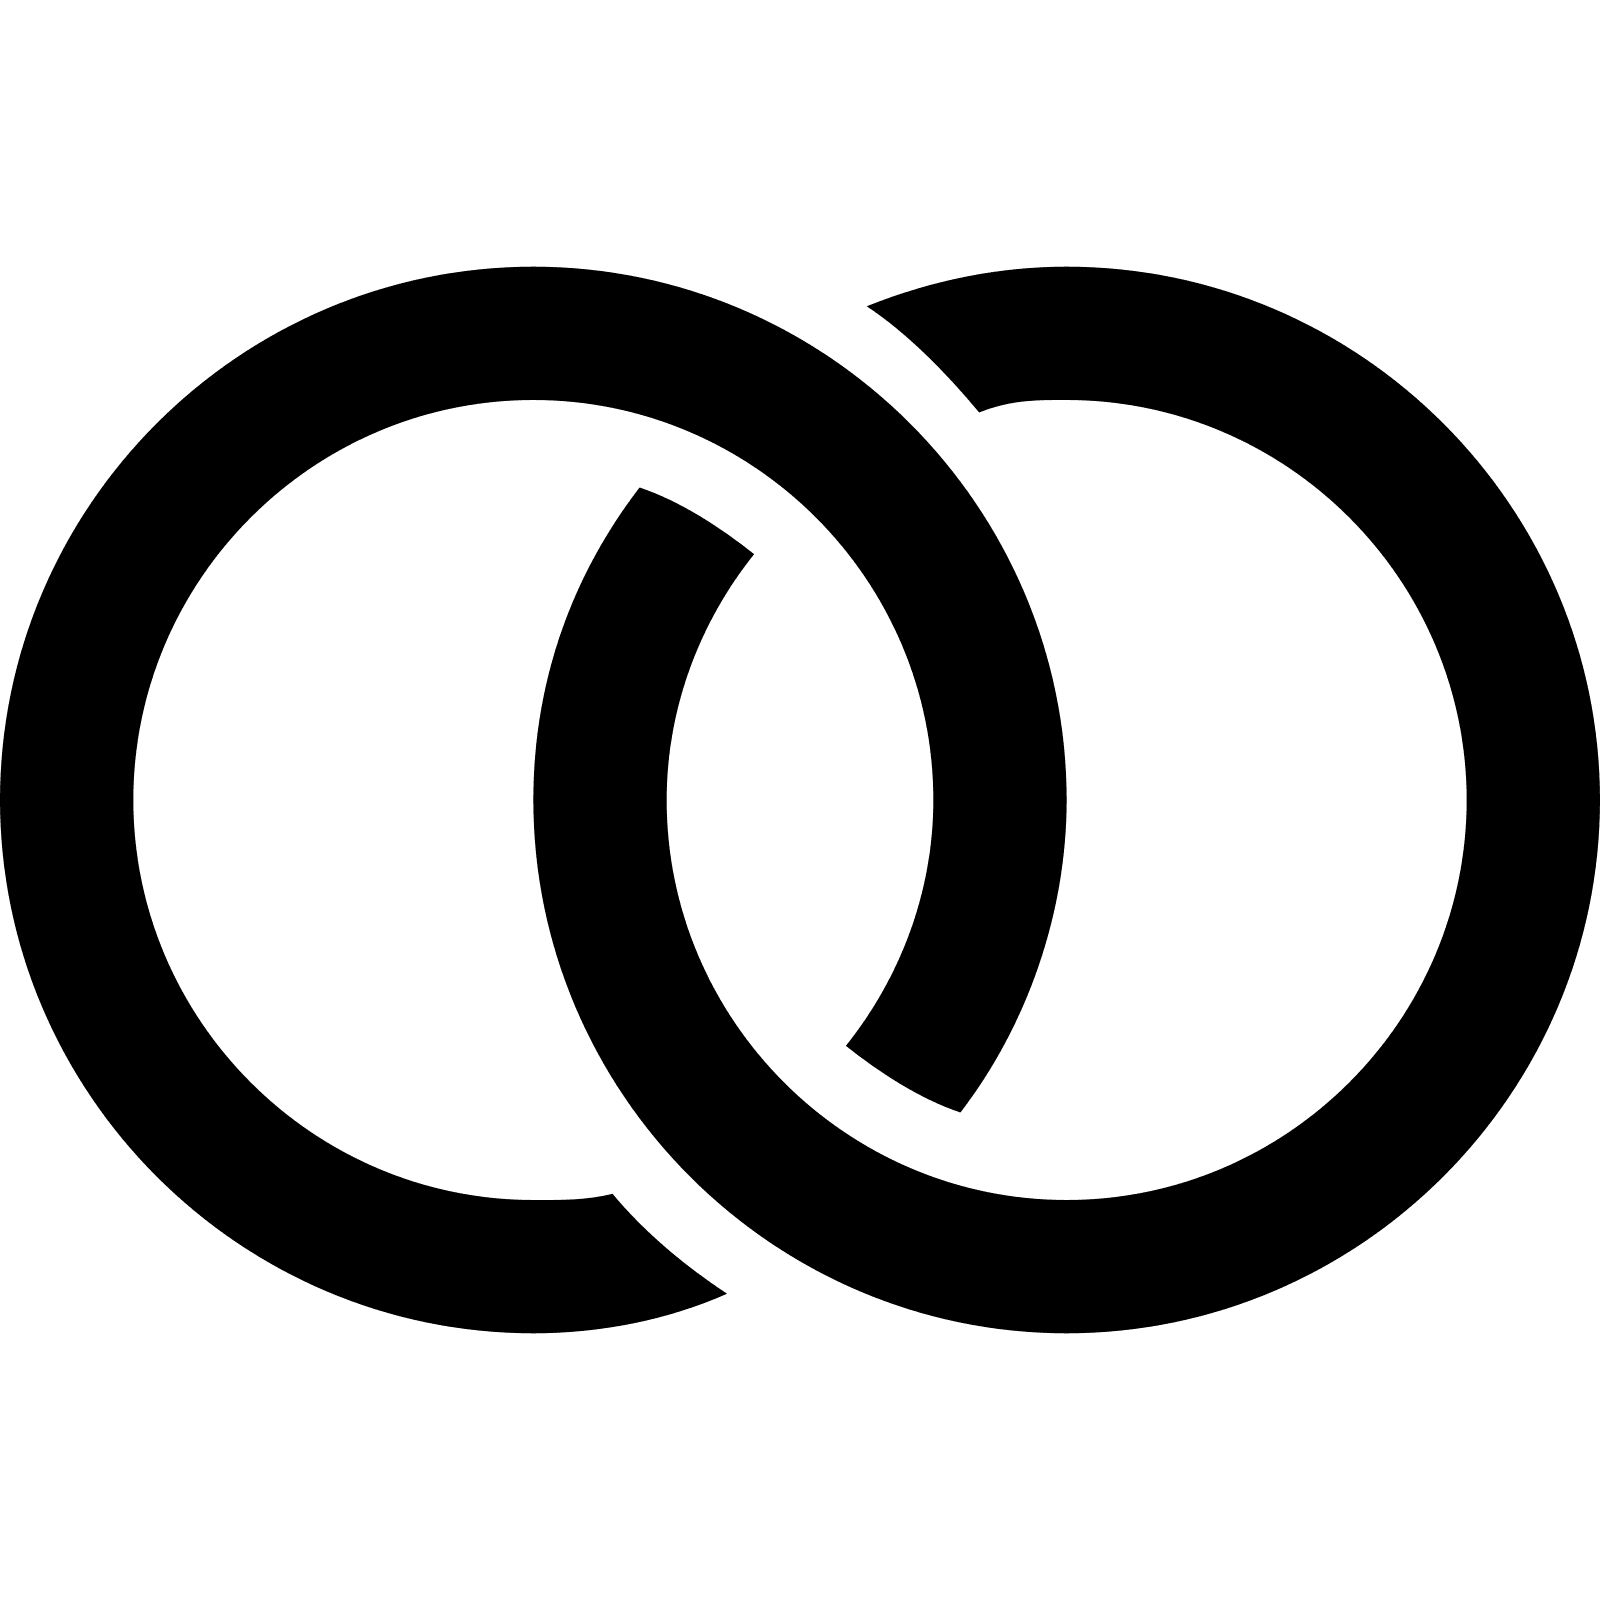 The Icon Of Wedding Rings Consists Of Two Circles Linked Together. The  Circles Are Like. PNG 50 Px - Eheringe Symbol PNG